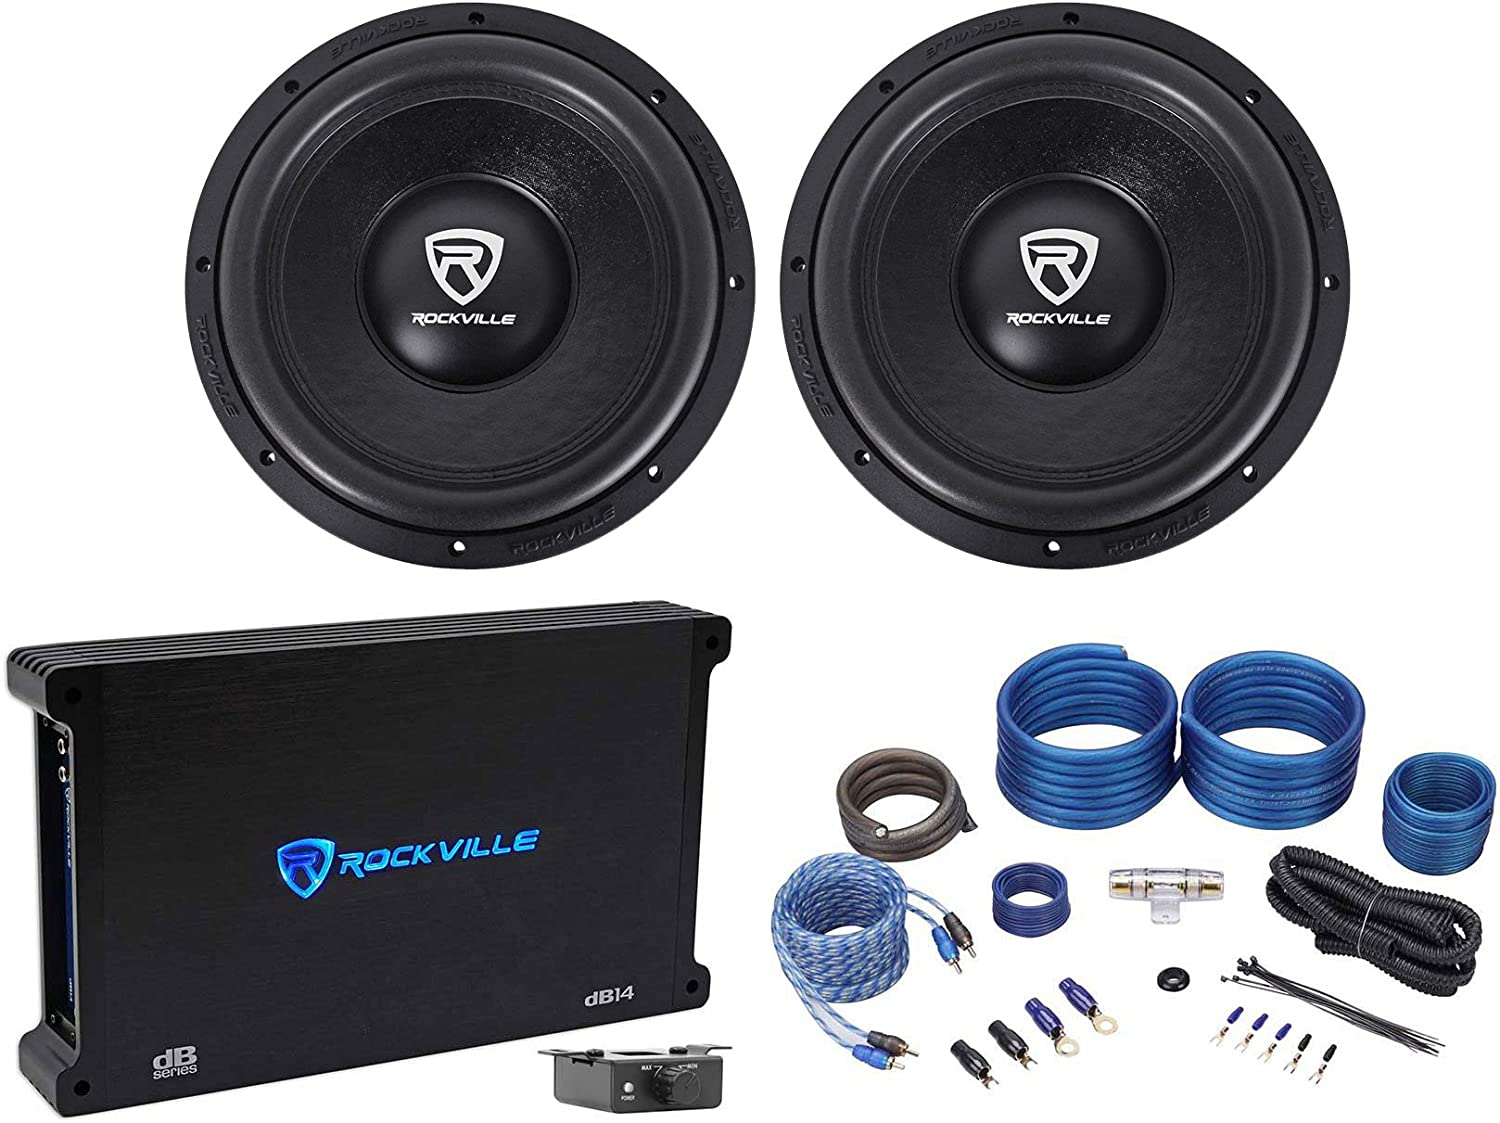 "(2) Rockville W12K6D2 V2 12"" 4800w Car Audio Subwoofers+Mono Amplifier+Amp Kit 71Dj3ts6k6LSL1500_"